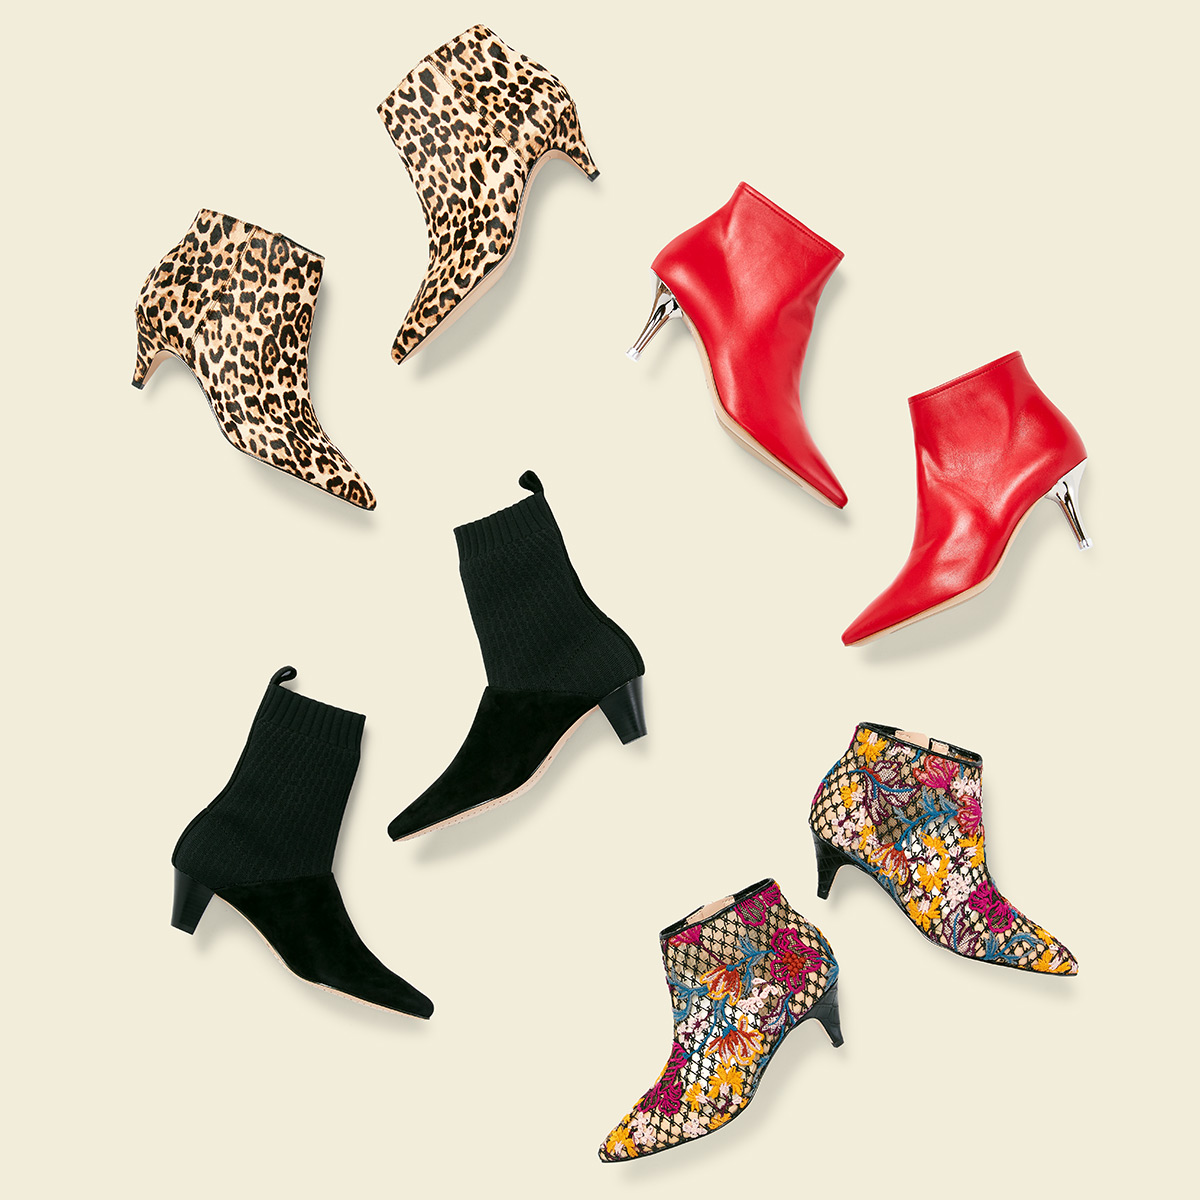 Four pairs of kitten heeled boots - one bright red, one in leopard print, one black with fabric tops, and one in floral print - laid flat on a cream background.